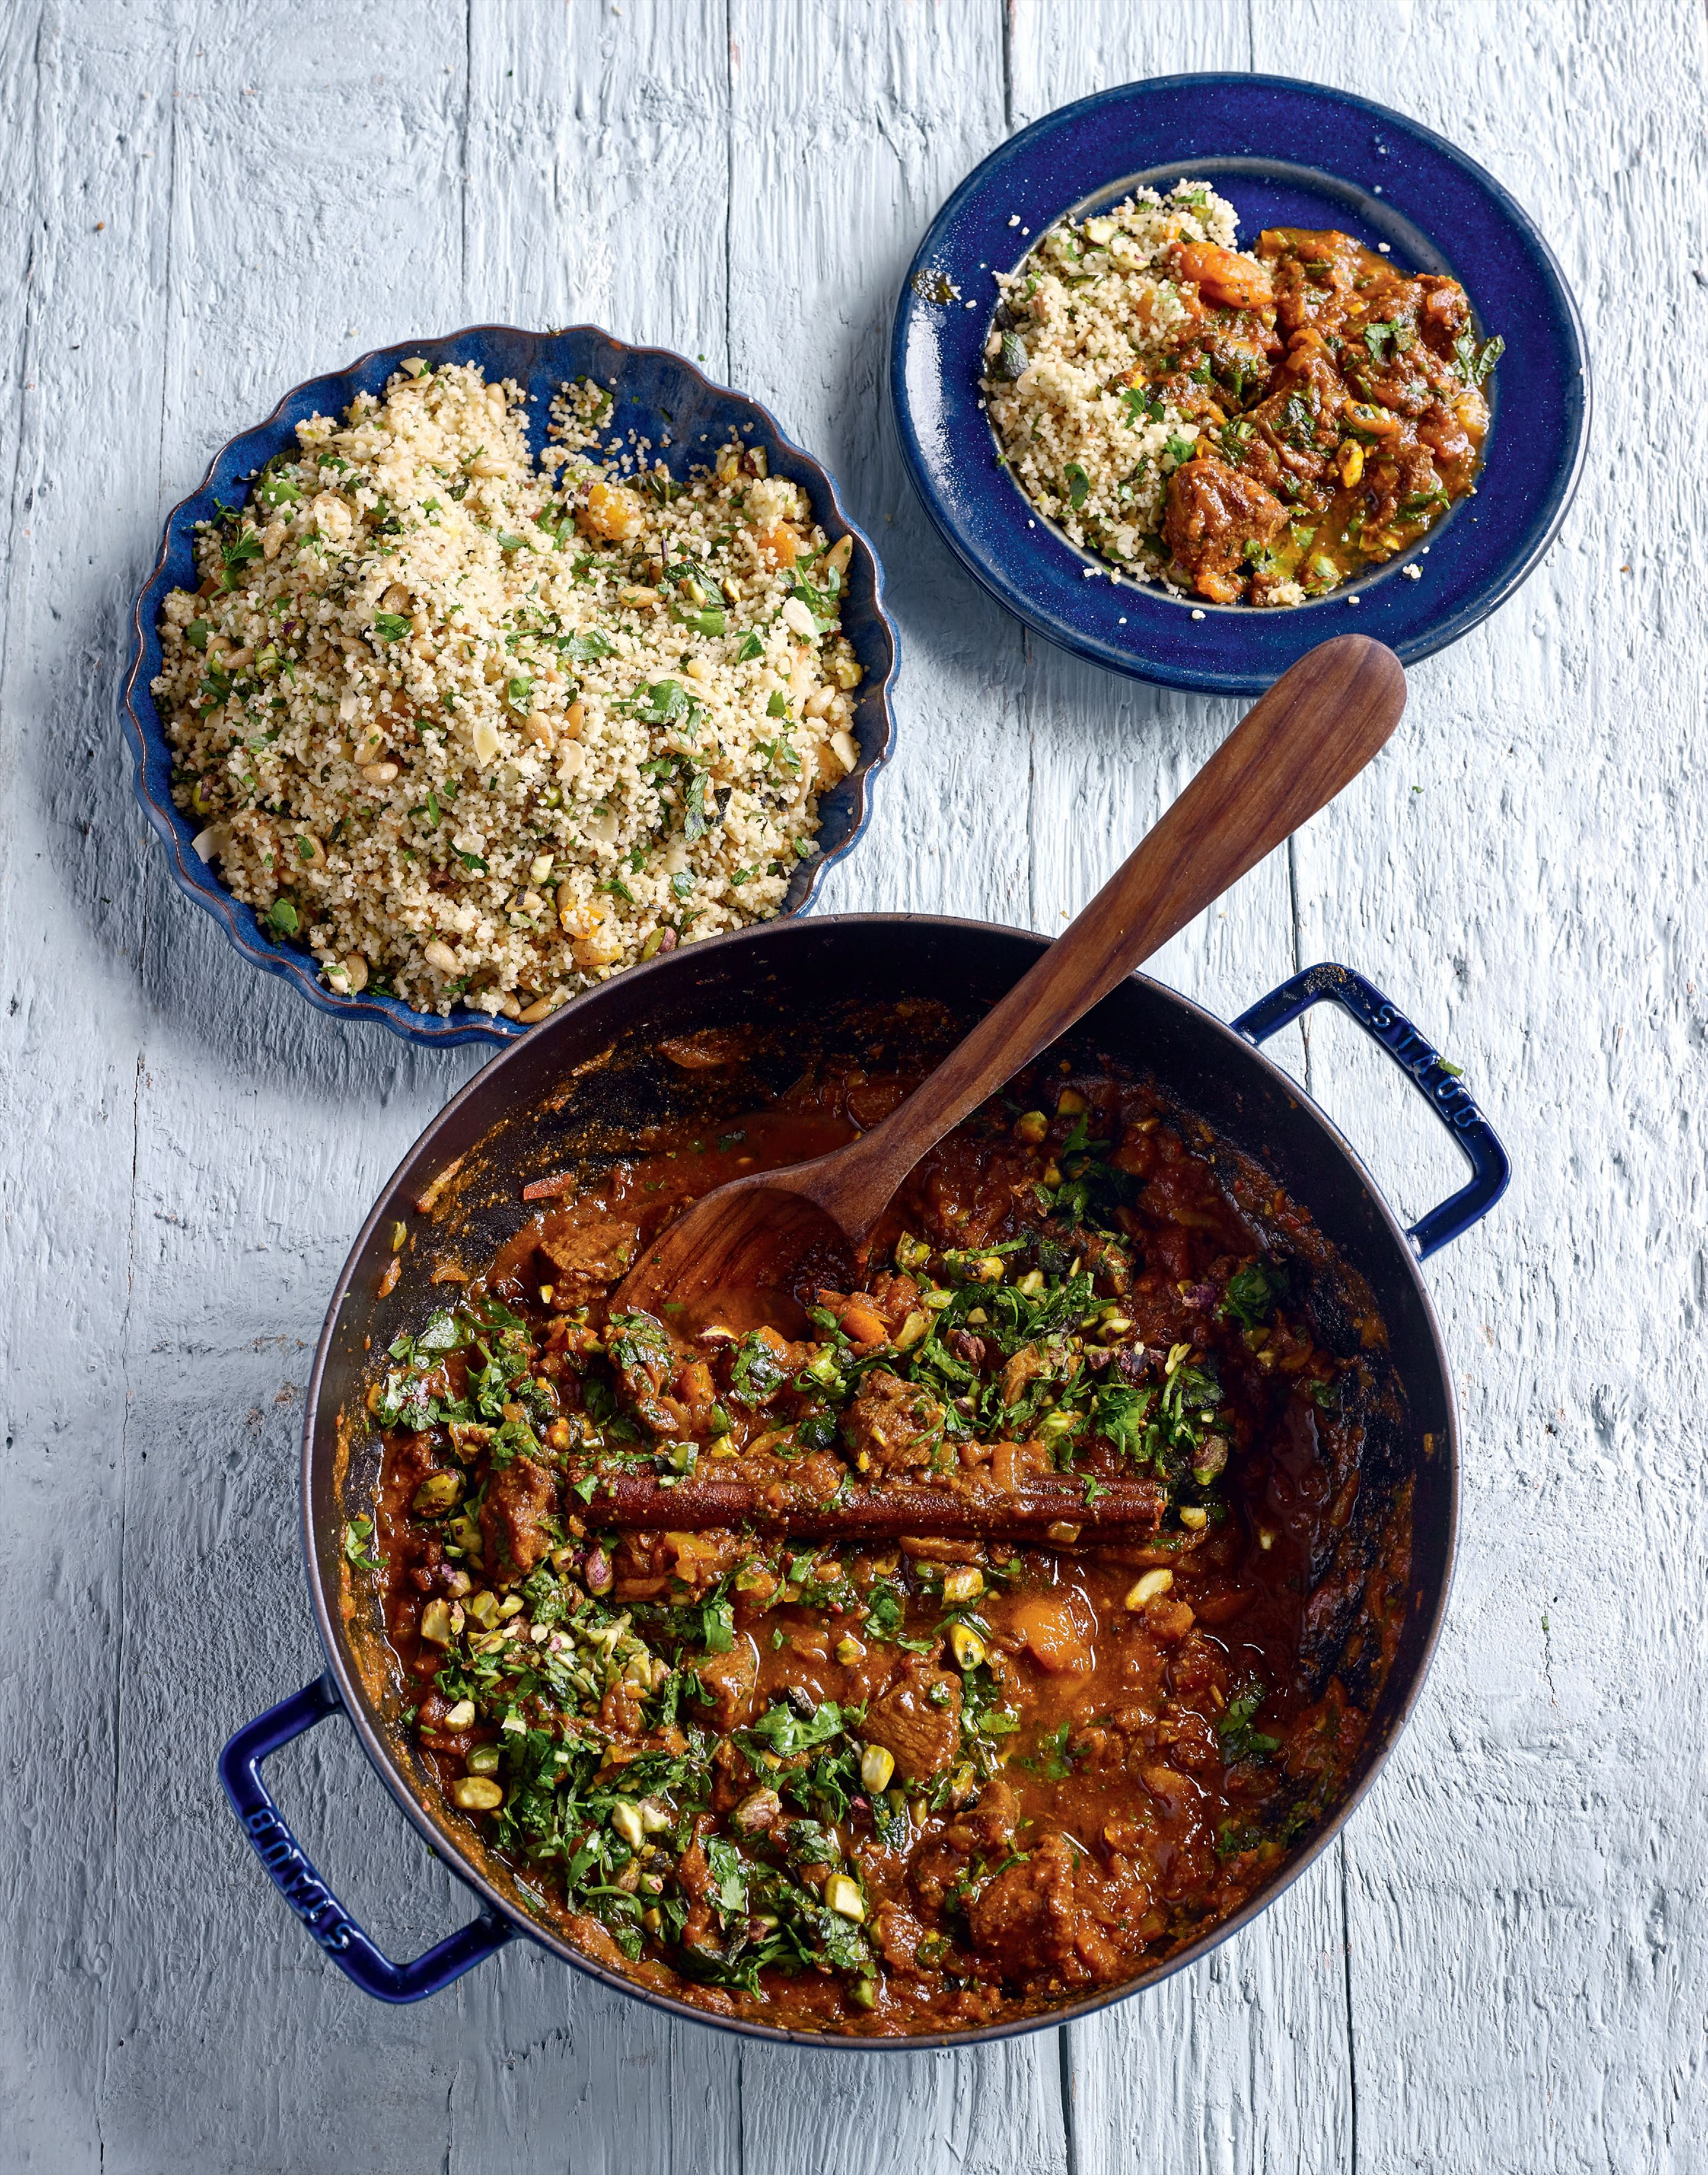 Goat tagine with toasted nut couscous